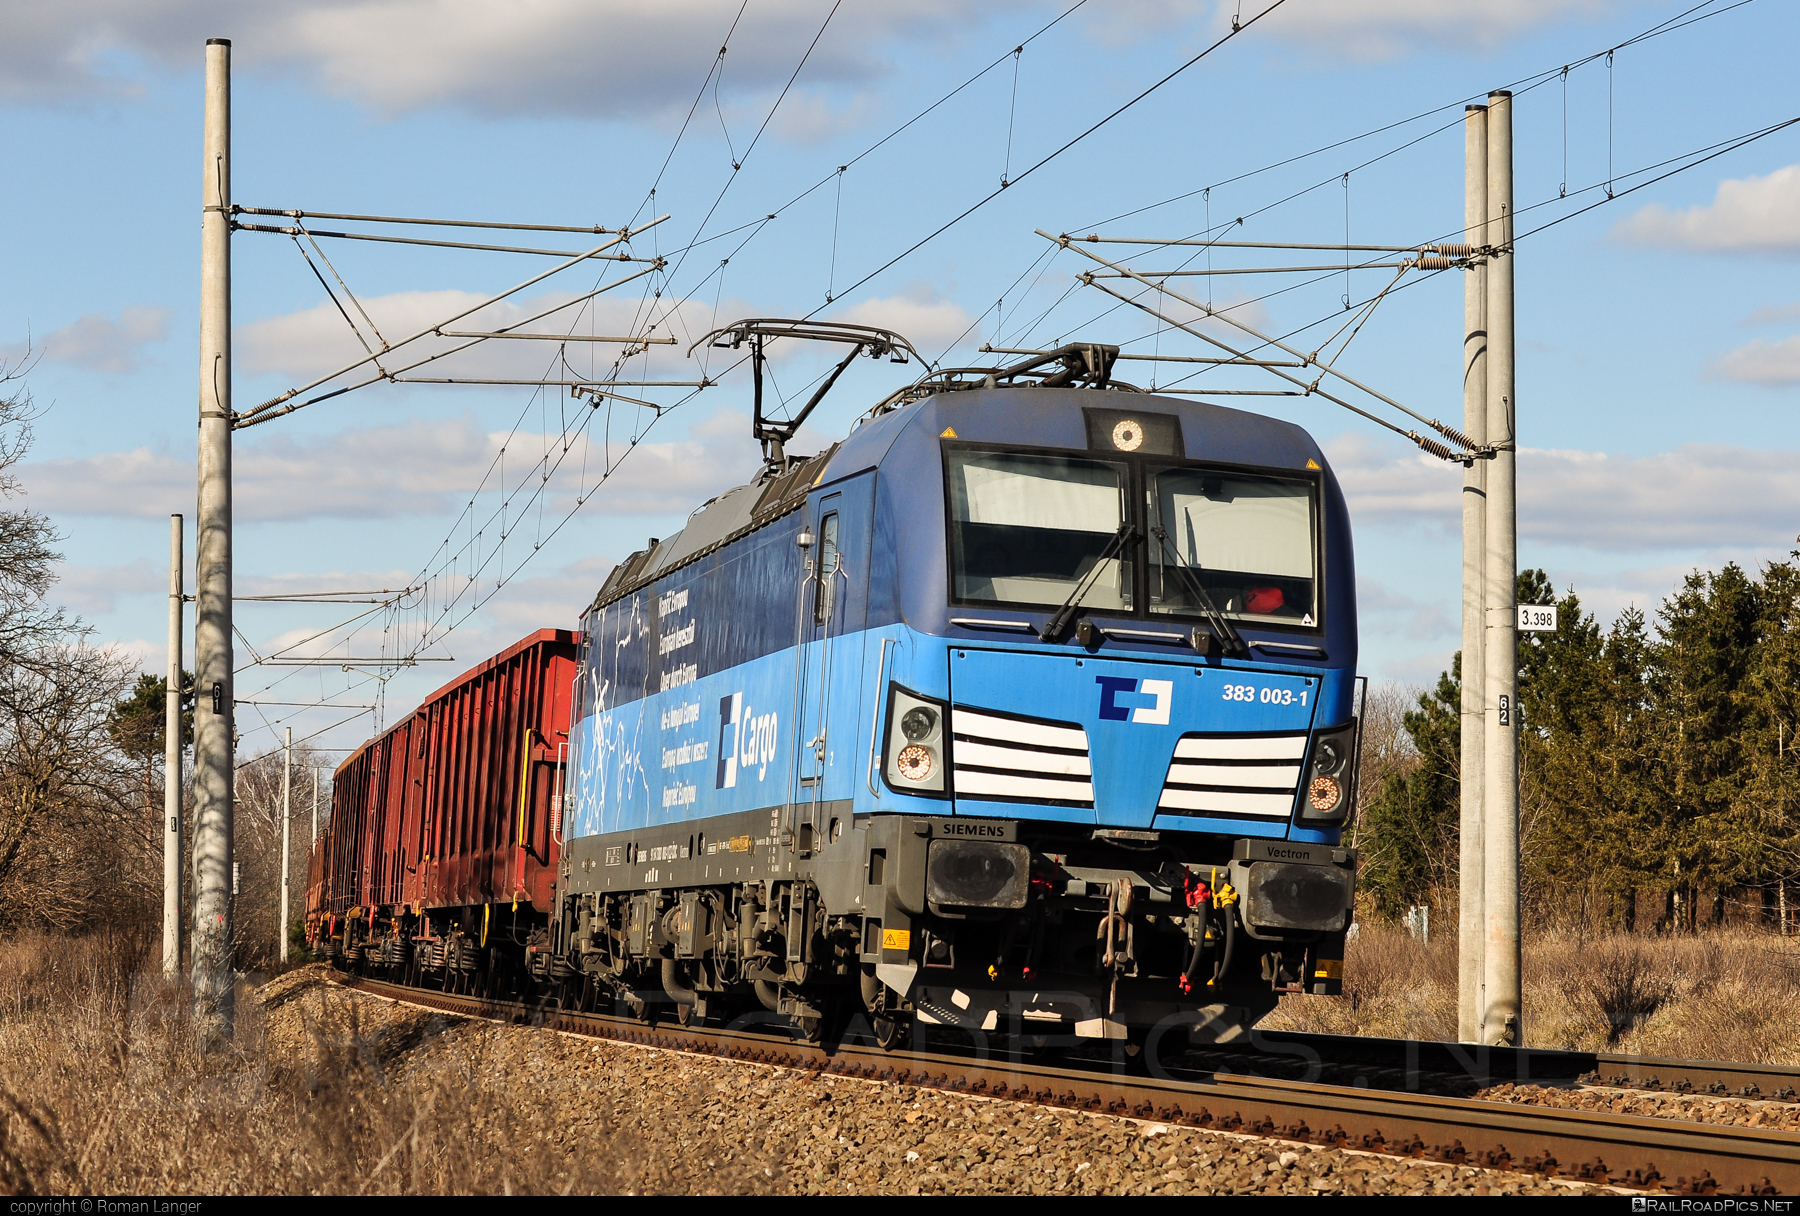 Siemens Vectron MS - 383 003-1 operated by ČD Cargo, a.s. #cdcargo #siemens #siemensvectron #siemensvectronms #vectron #vectronms